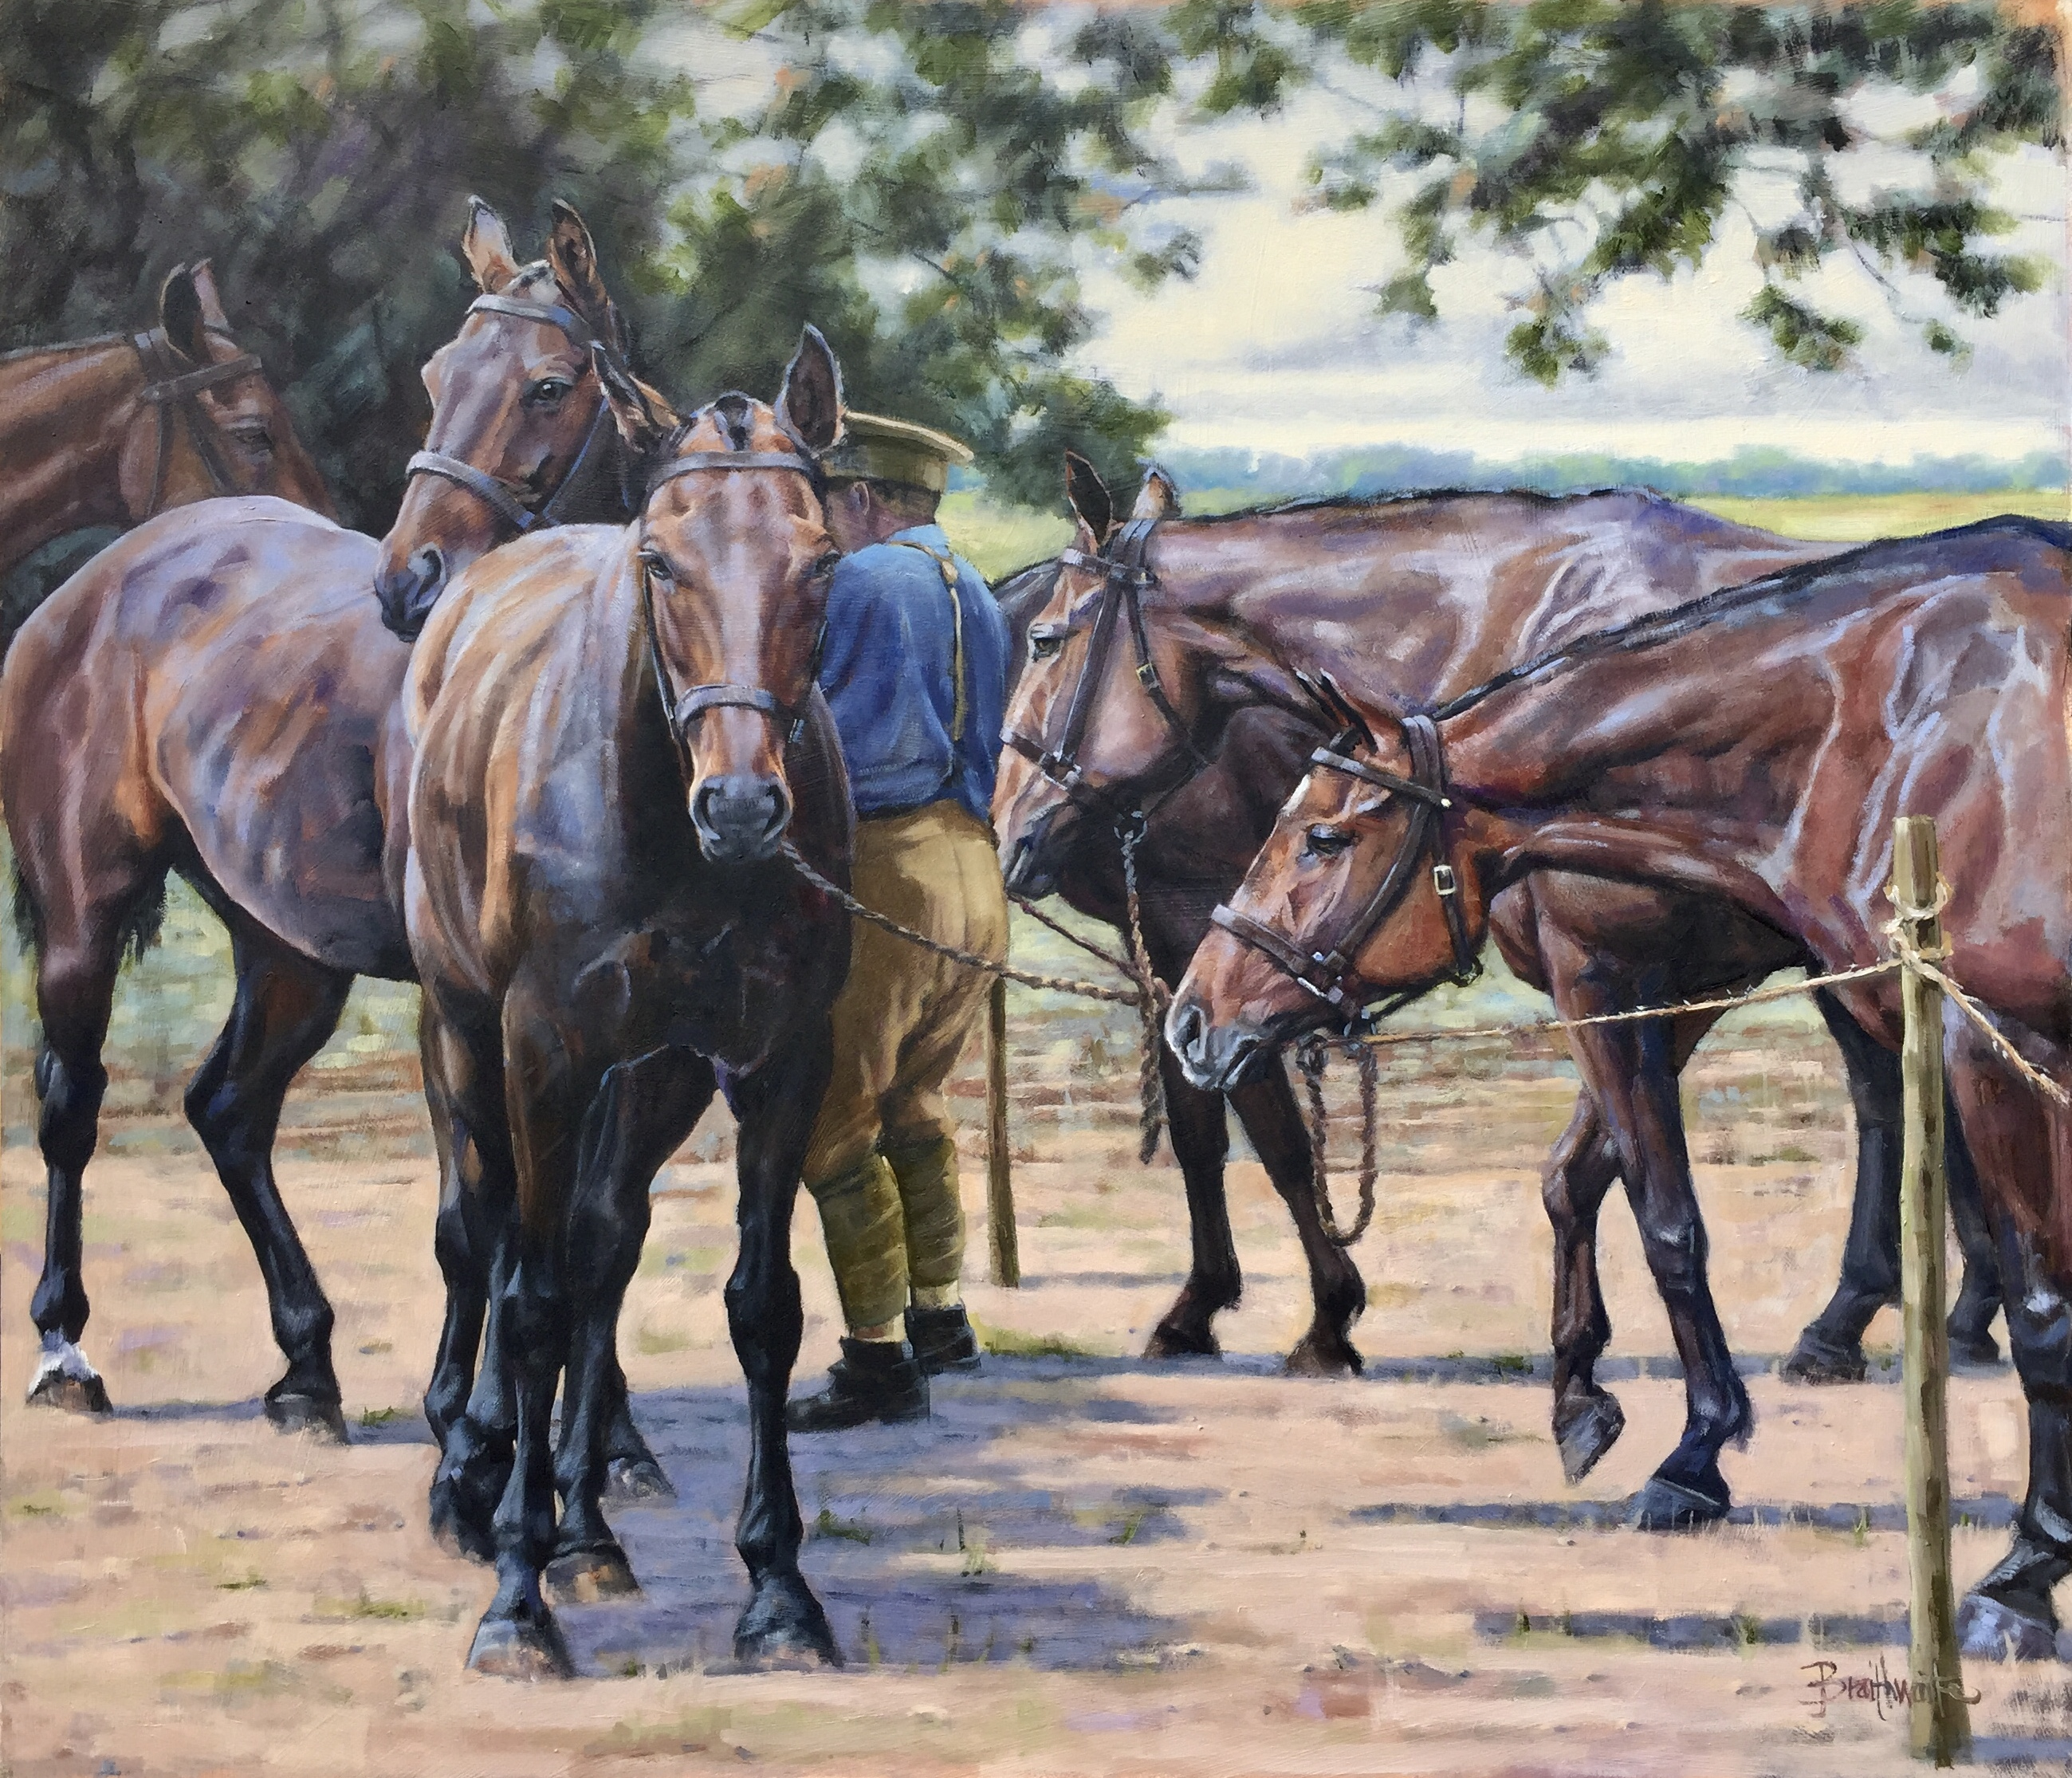 'Band of Brothers'. Oil on board